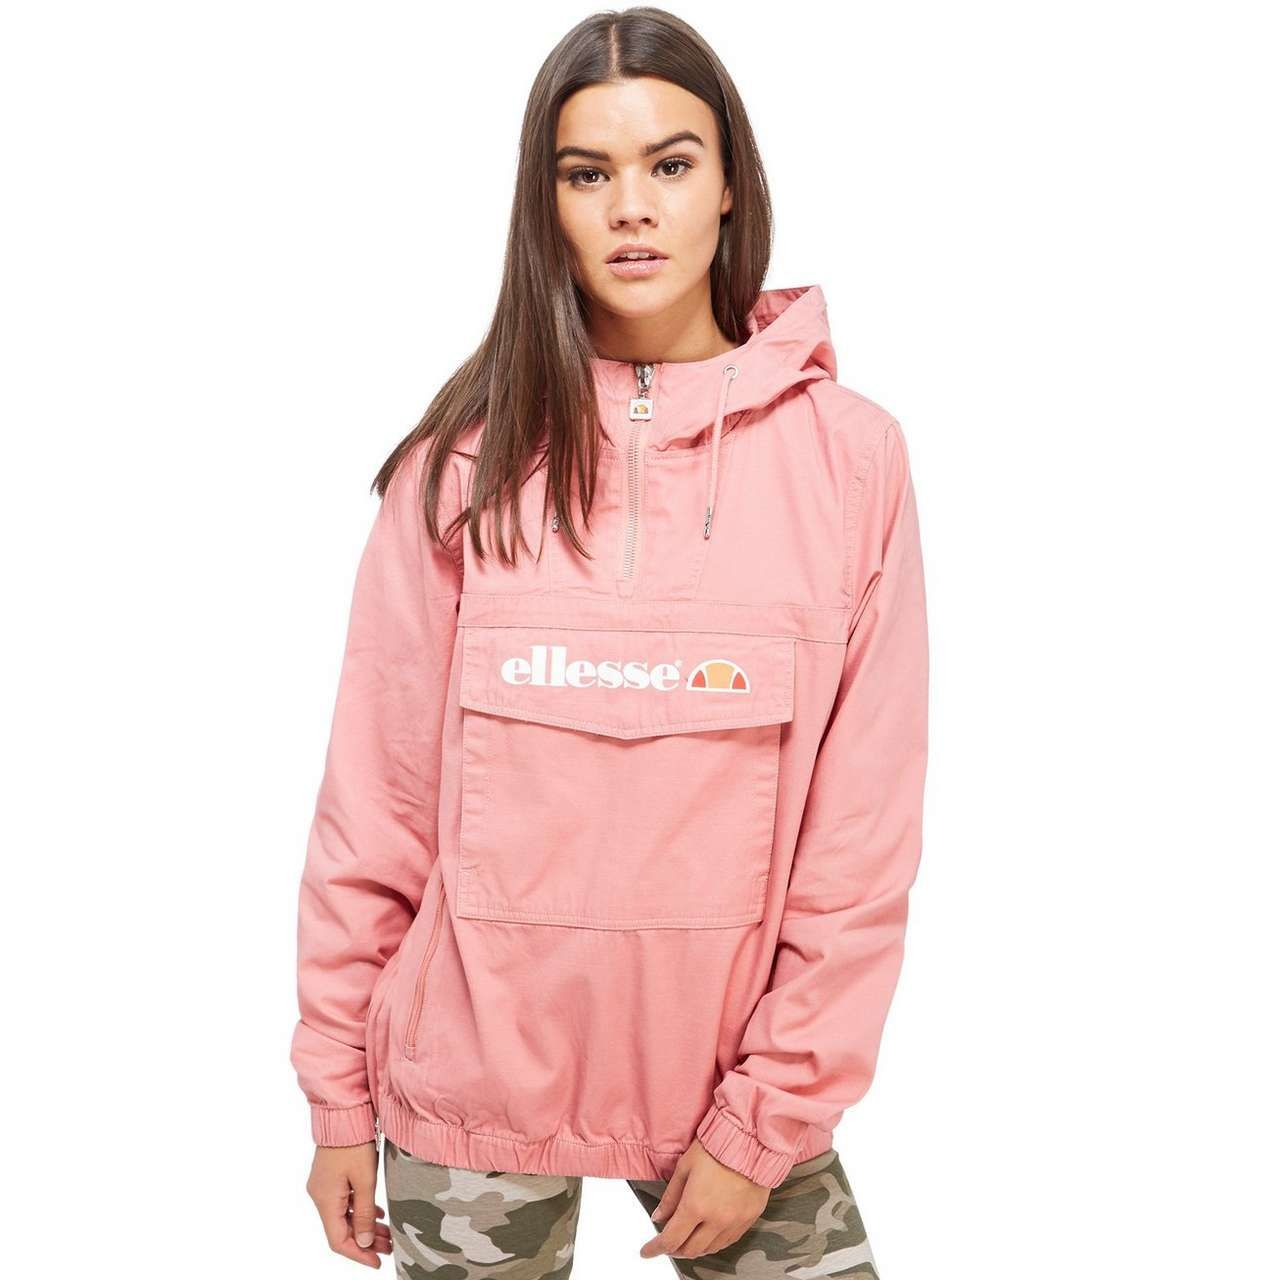 Ellesse Pullover Hooded Jacket With Half Zip And Logo On